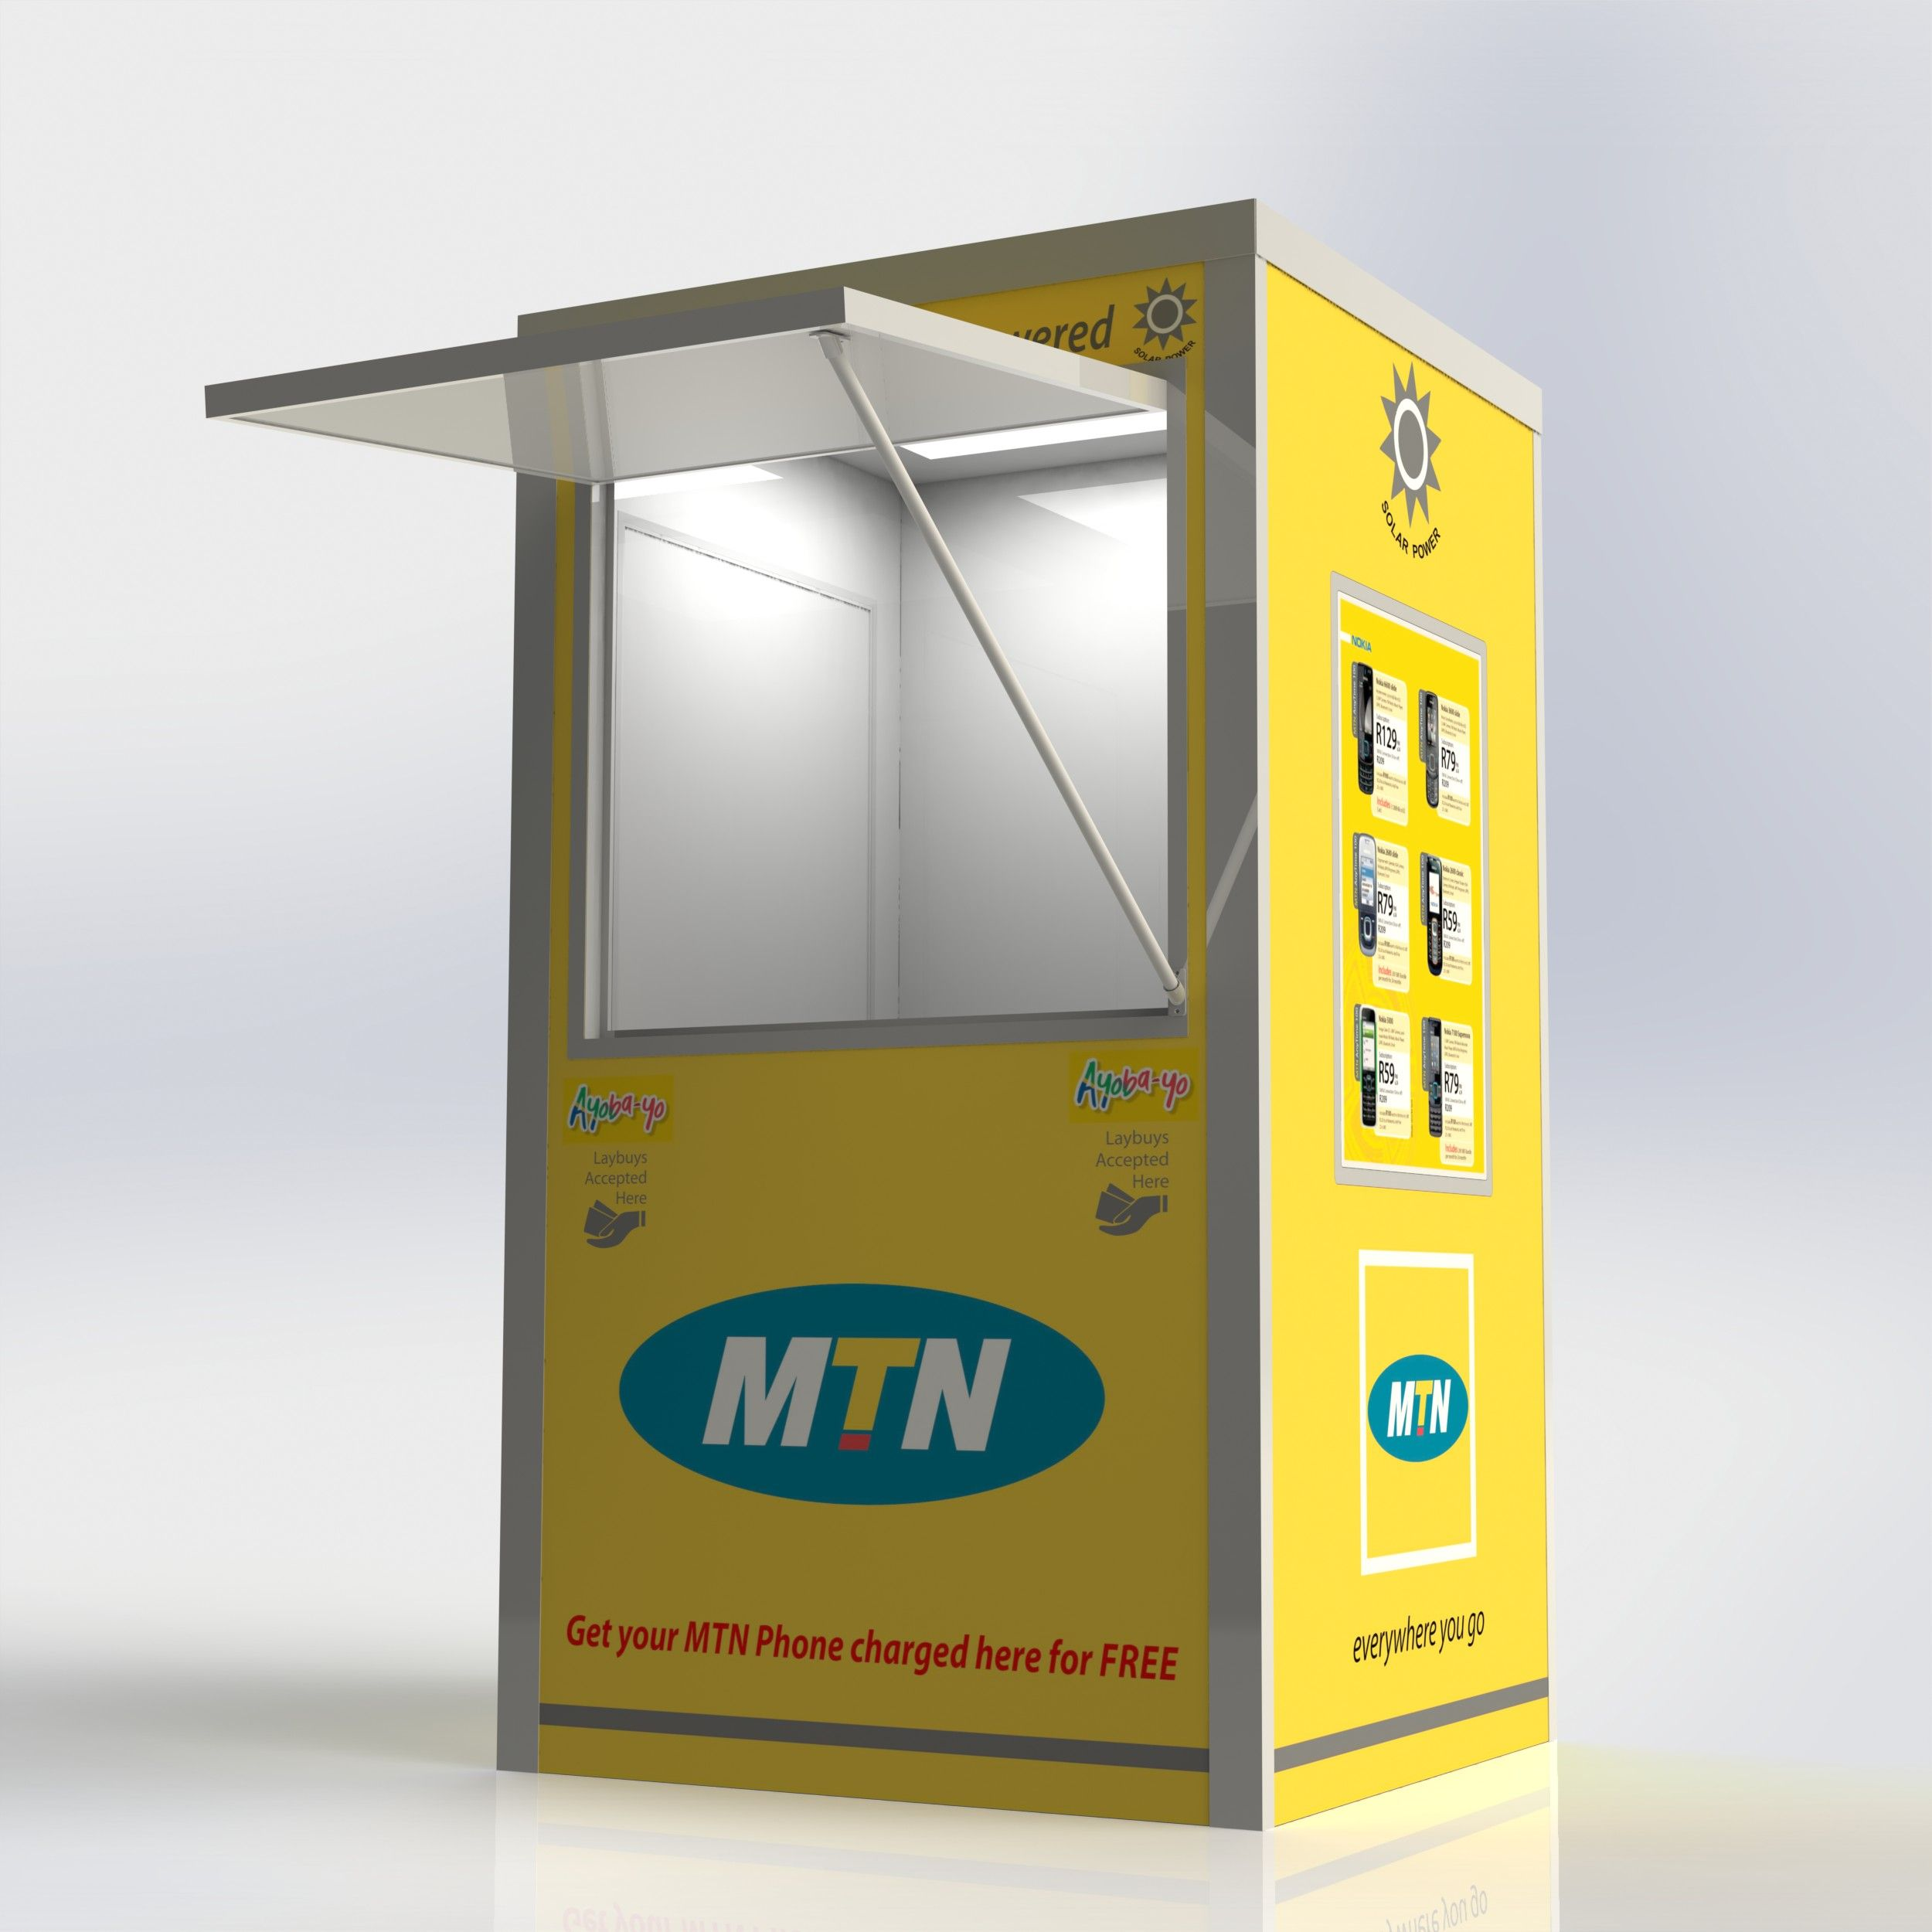 The spaza shop kiosk is now sporting a budget emerging for Mobili kios